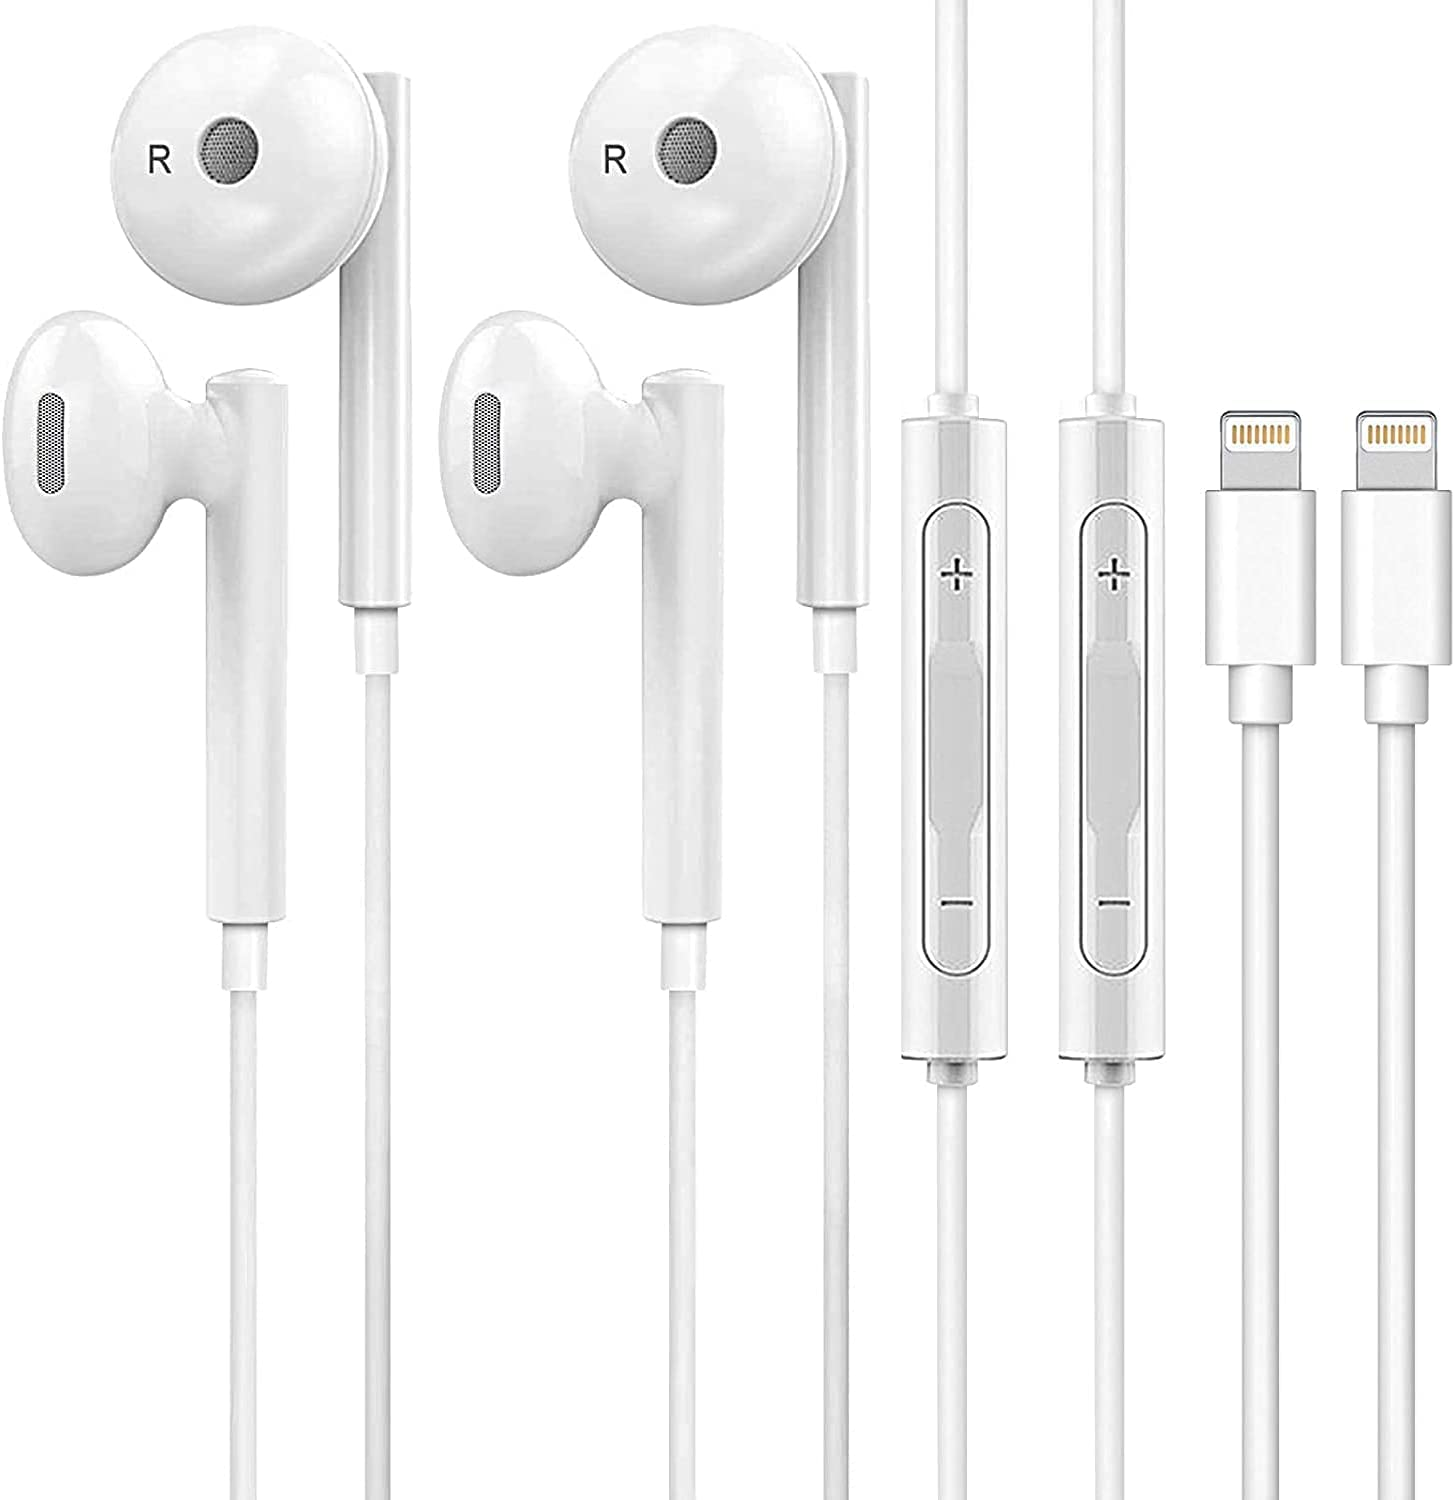 Wired Earbuds Earphones 2 Pack Stereo Sound Bass, Noise Isolating Headsets for Calling and Music Listening